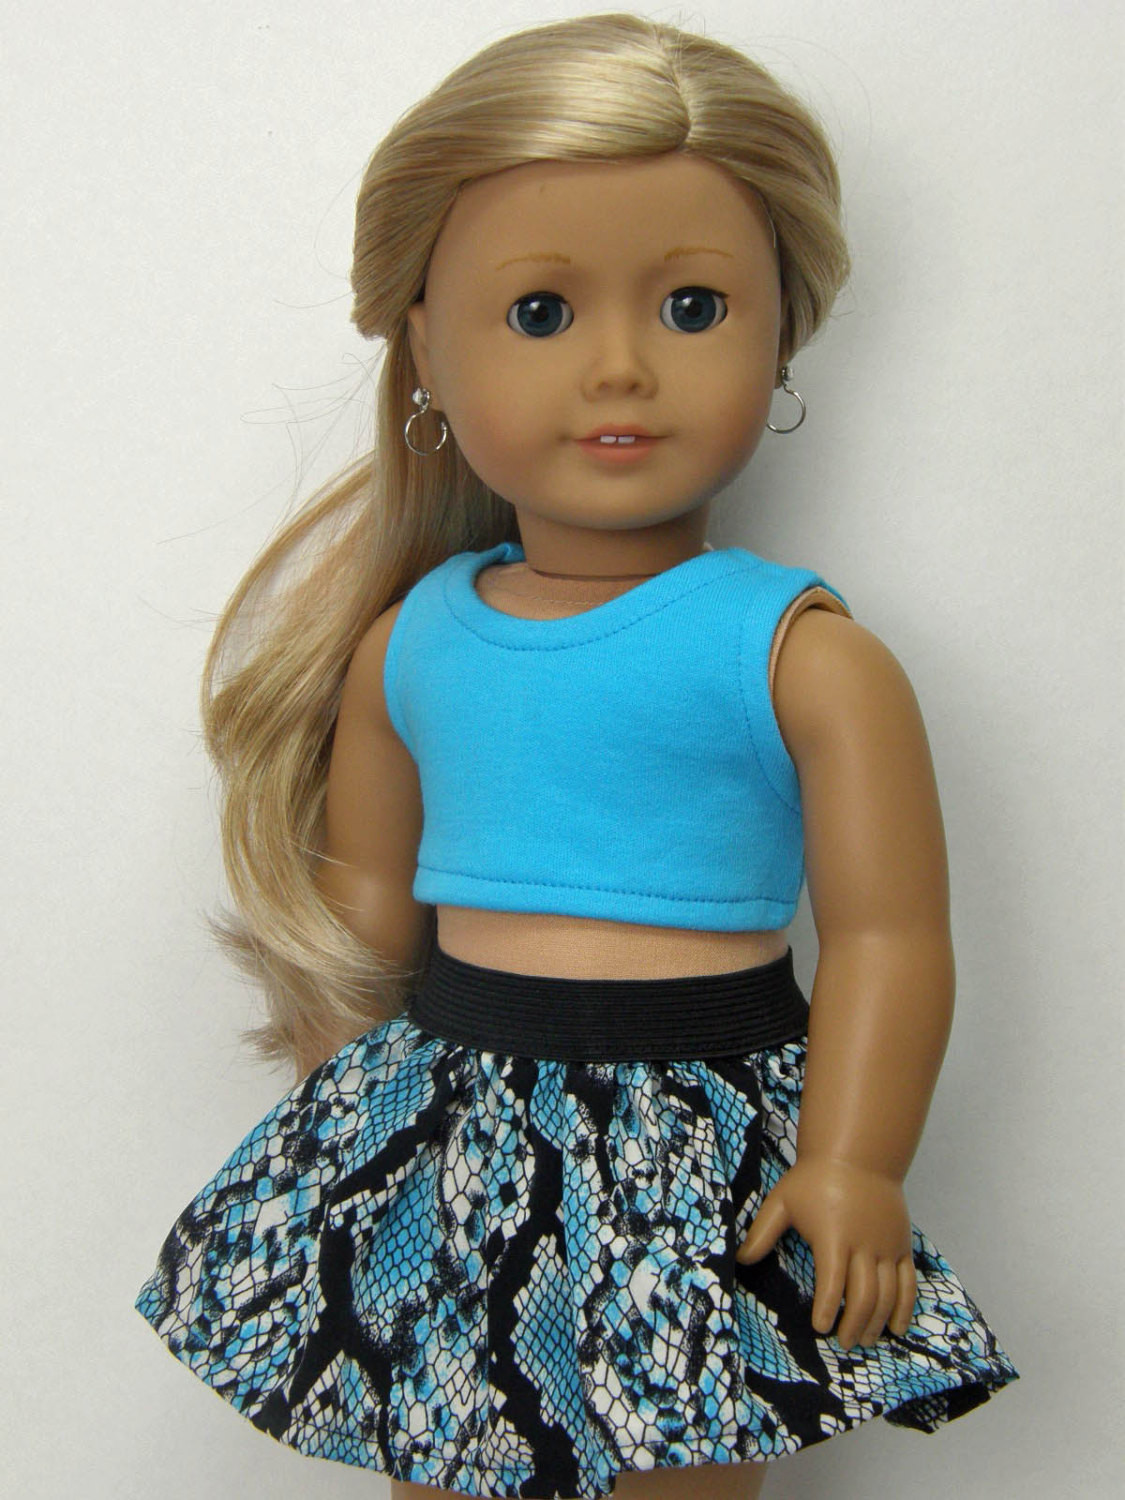 Unique 18 Inch Doll Clothes Girl Doll Clothes Ag Doll Clothes American Girl Doll Skirts Of Incredible 50 Ideas American Girl Doll Skirts